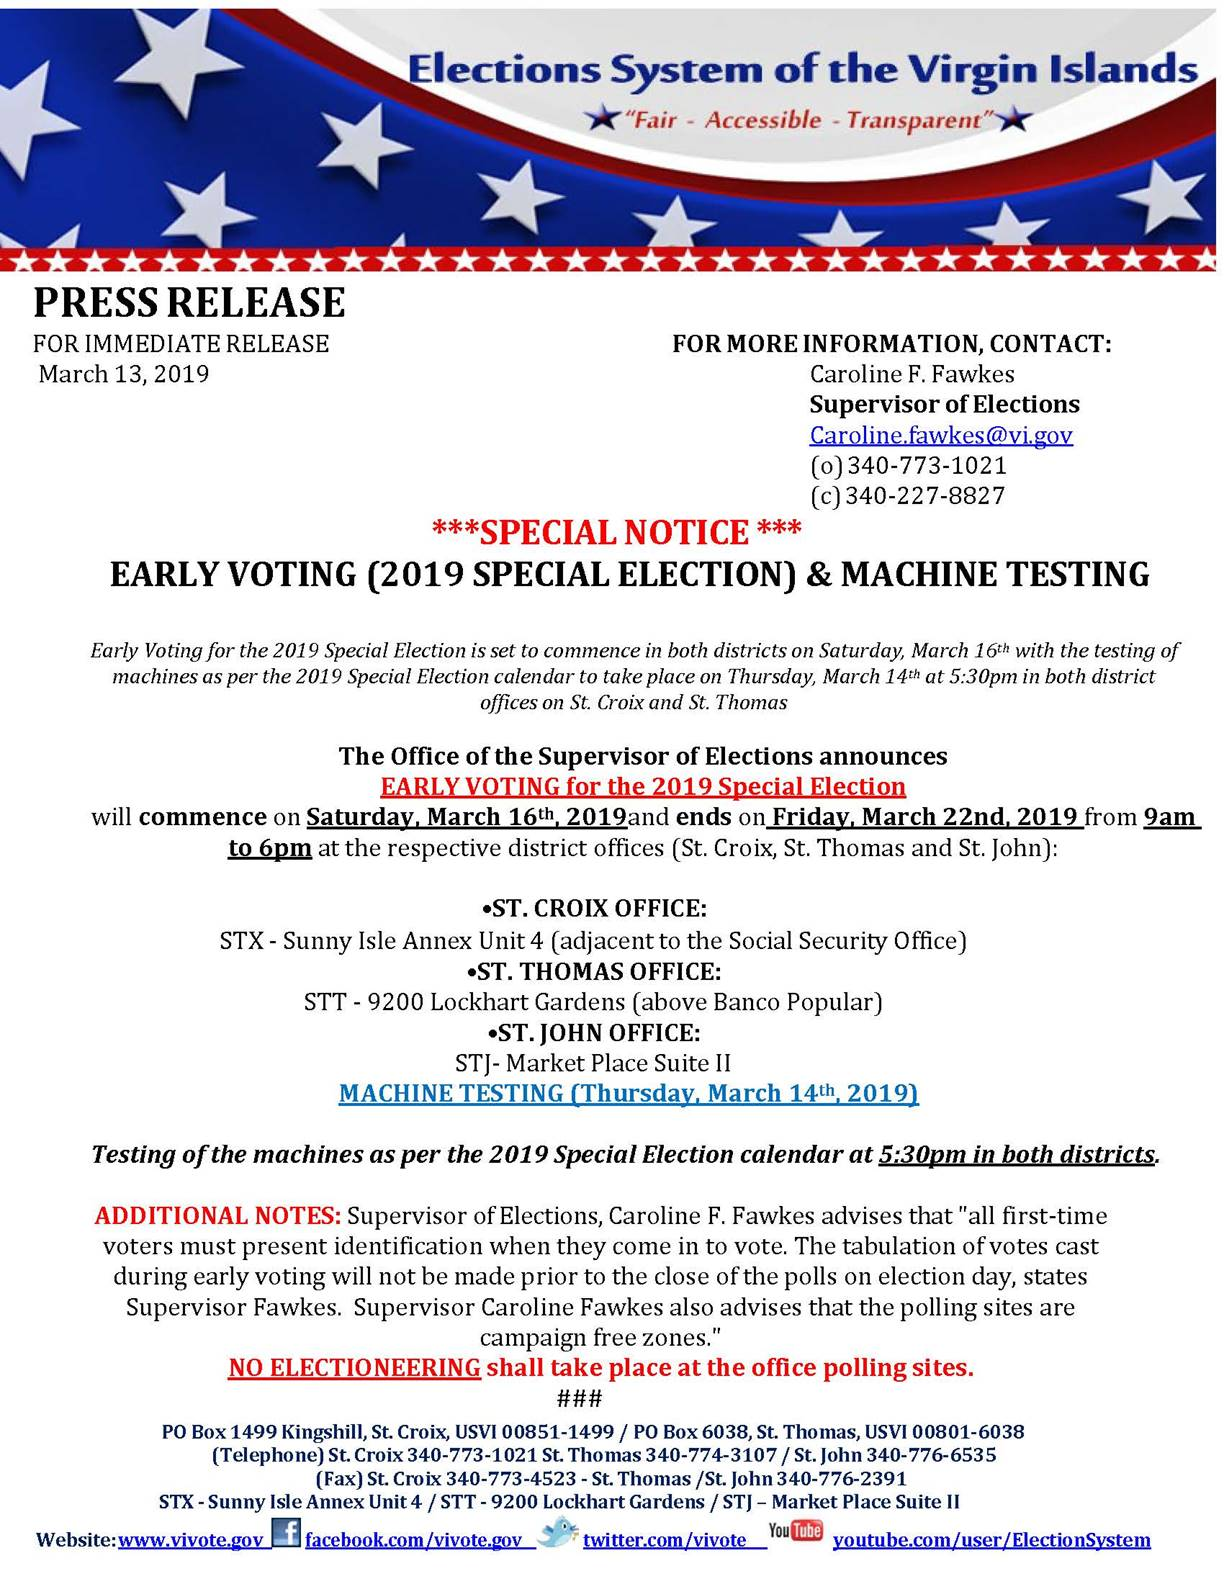 Early voting for Special Election begins this Saturday